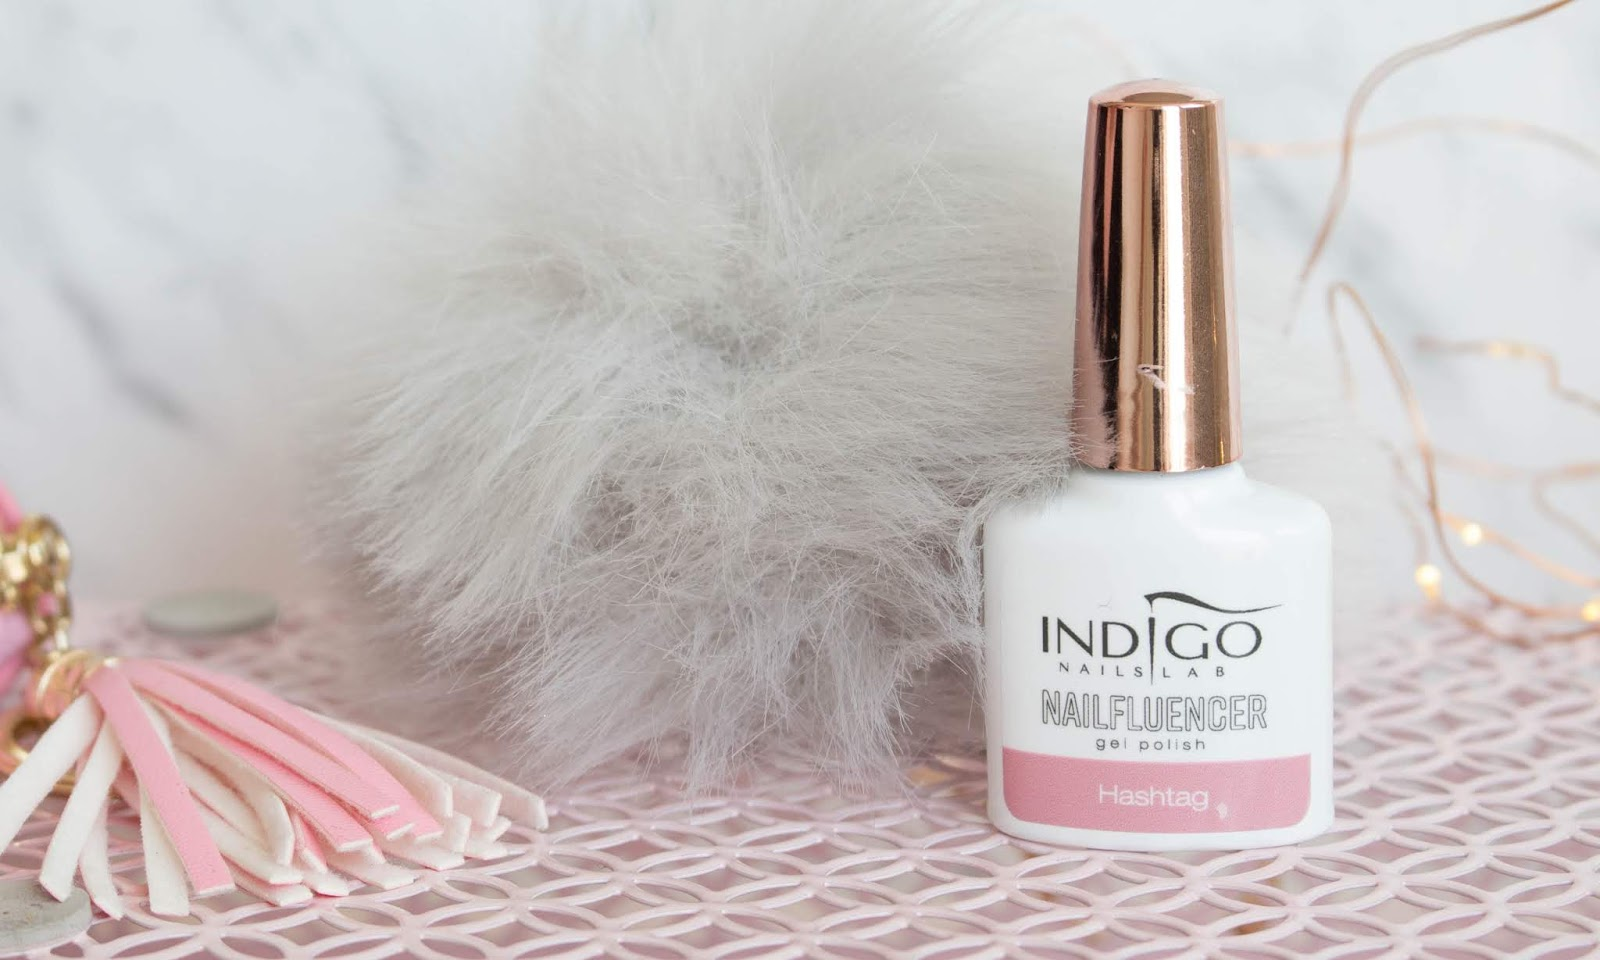 Indigo Hashtag Nailfluencer Collection